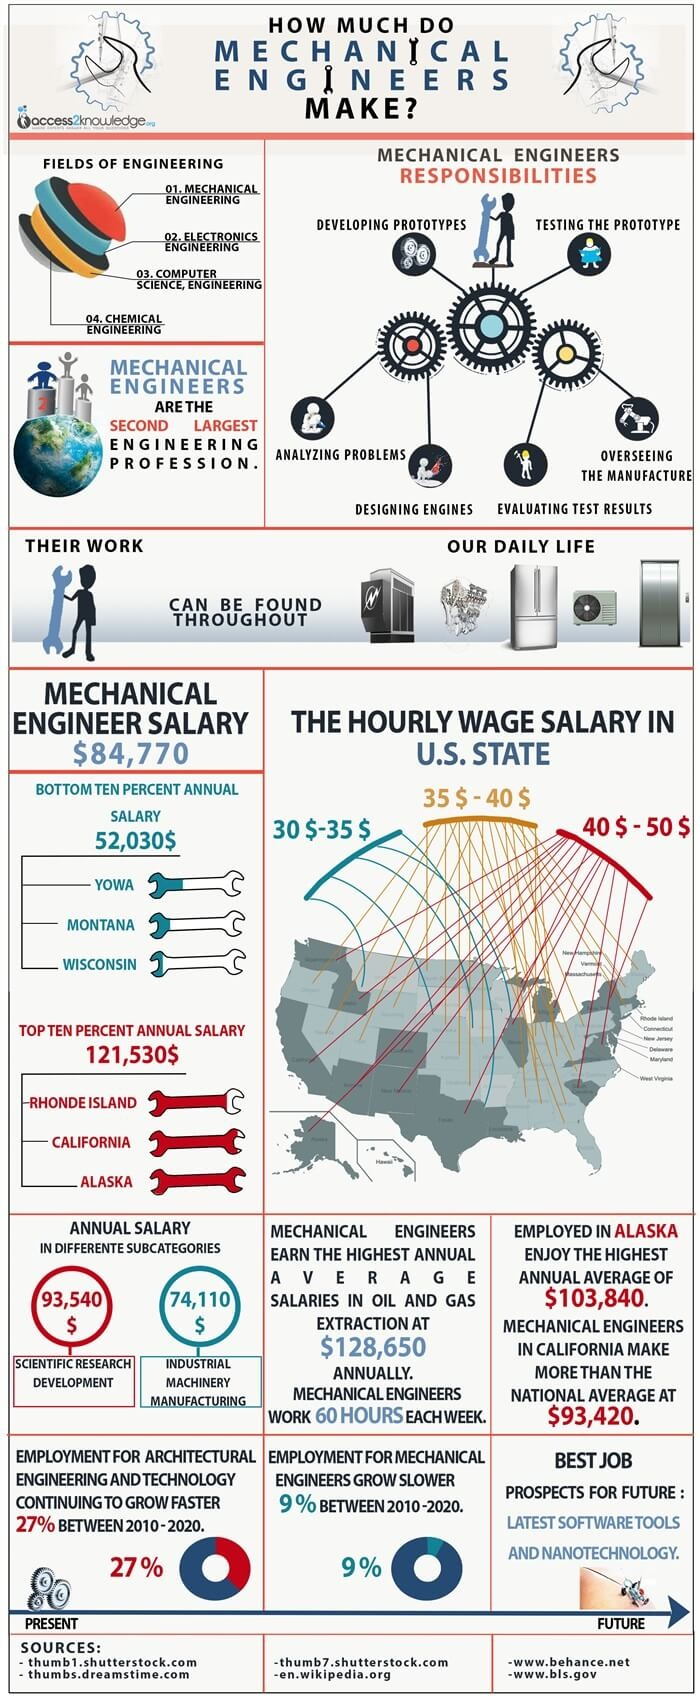 an infographic on how much do mechanical engineers make